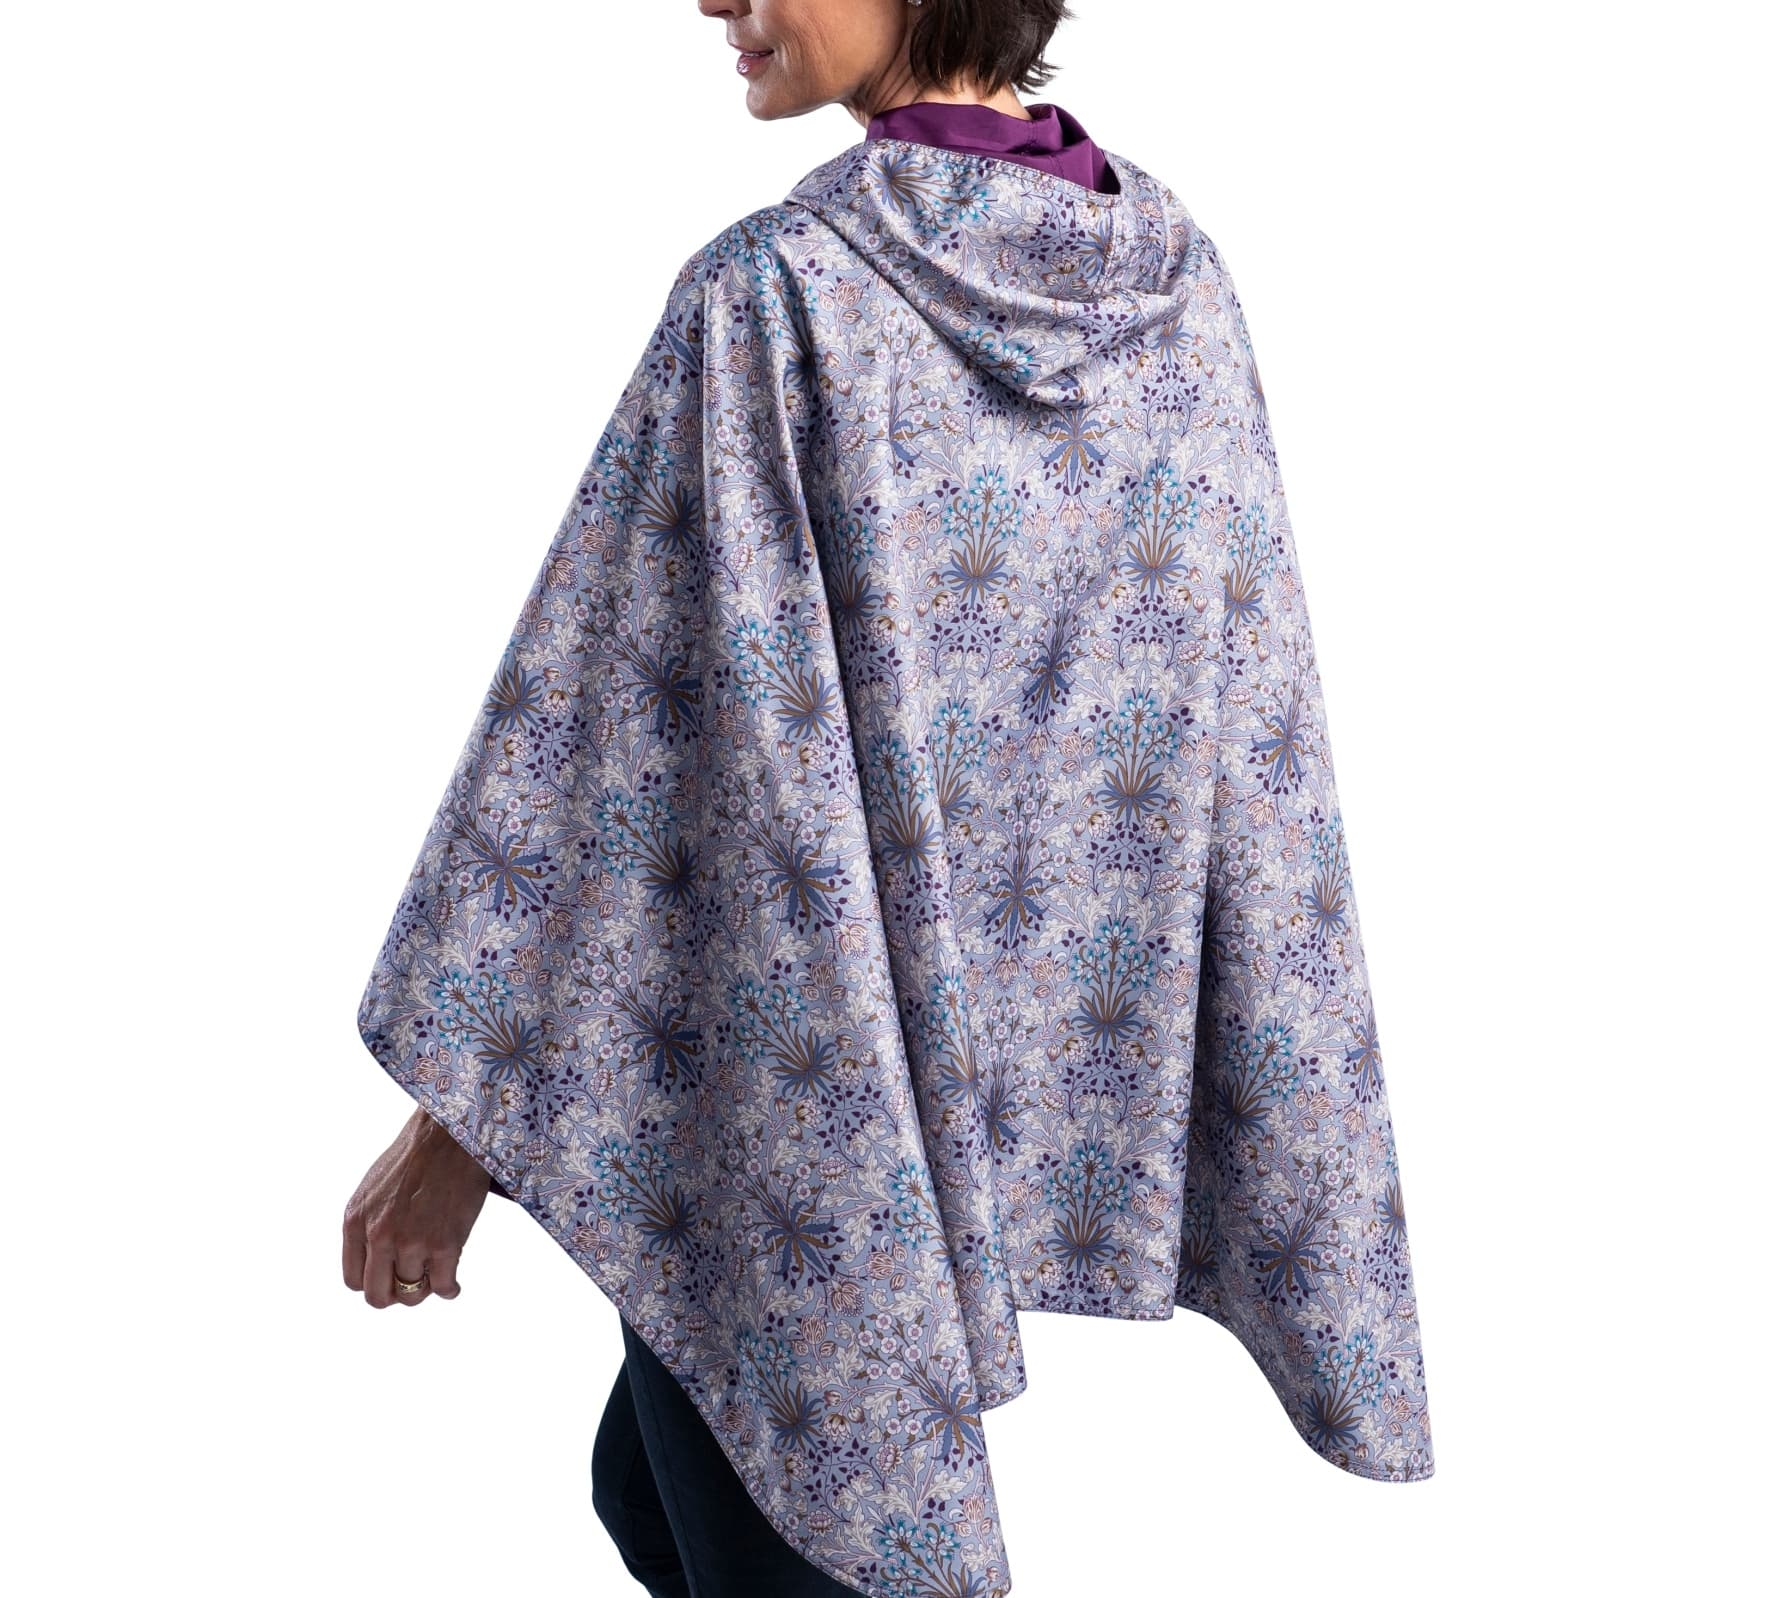 Women wearing a Plum/William Morris Hyacinth RainCaper travel cape